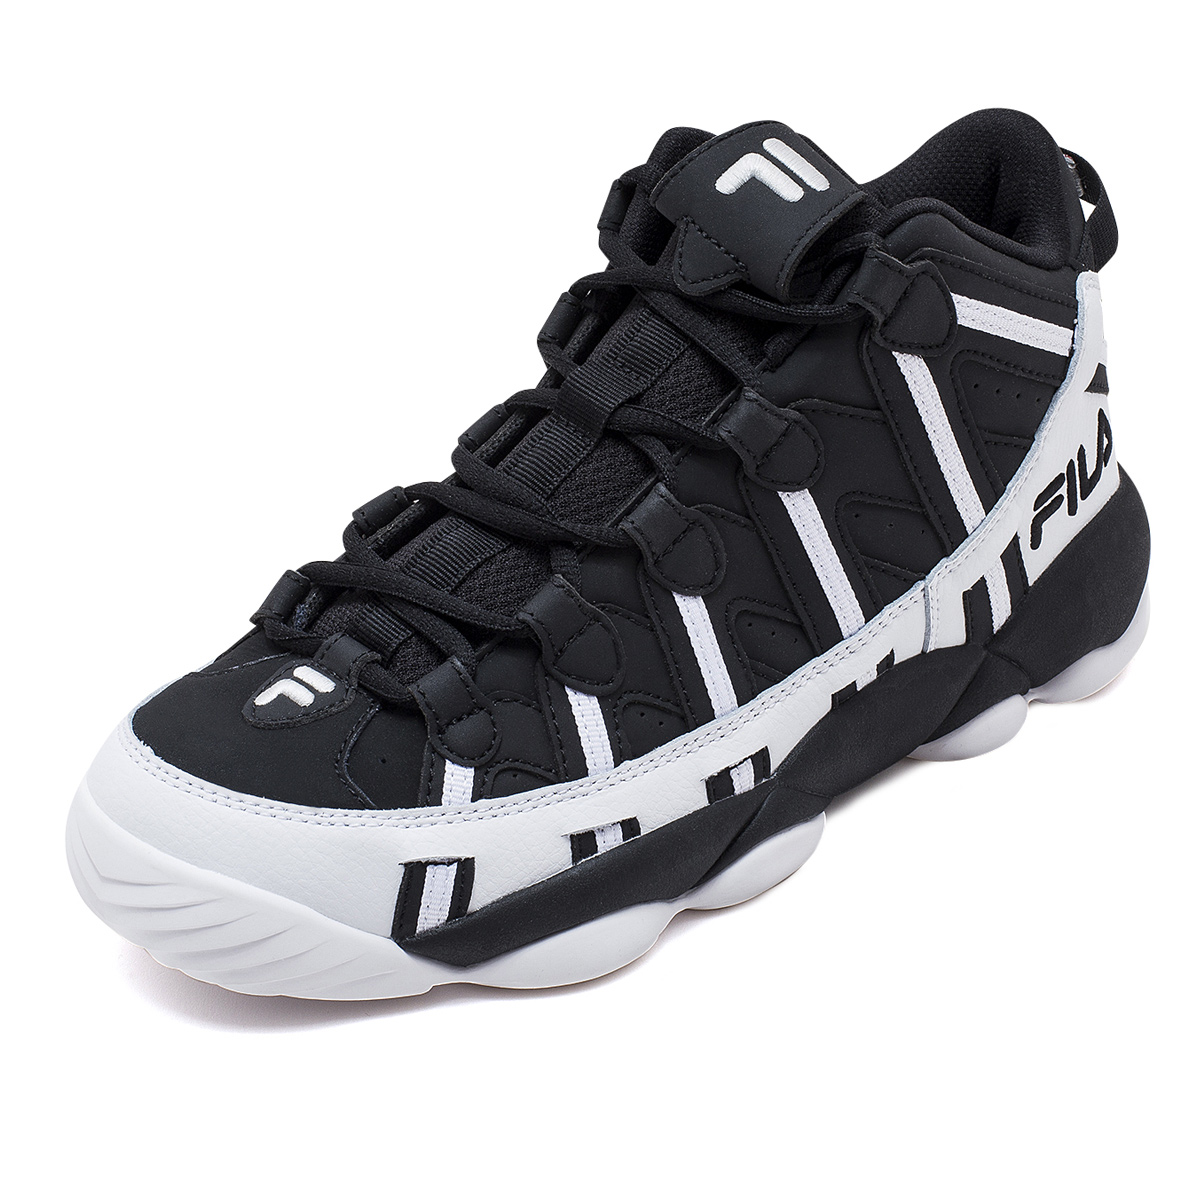 a90e1f42ef78 ... men s Shoes star basketball shoes tide shoes casual sports shoes  basketball shoes. Zoom · lightbox moreview · lightbox moreview ...